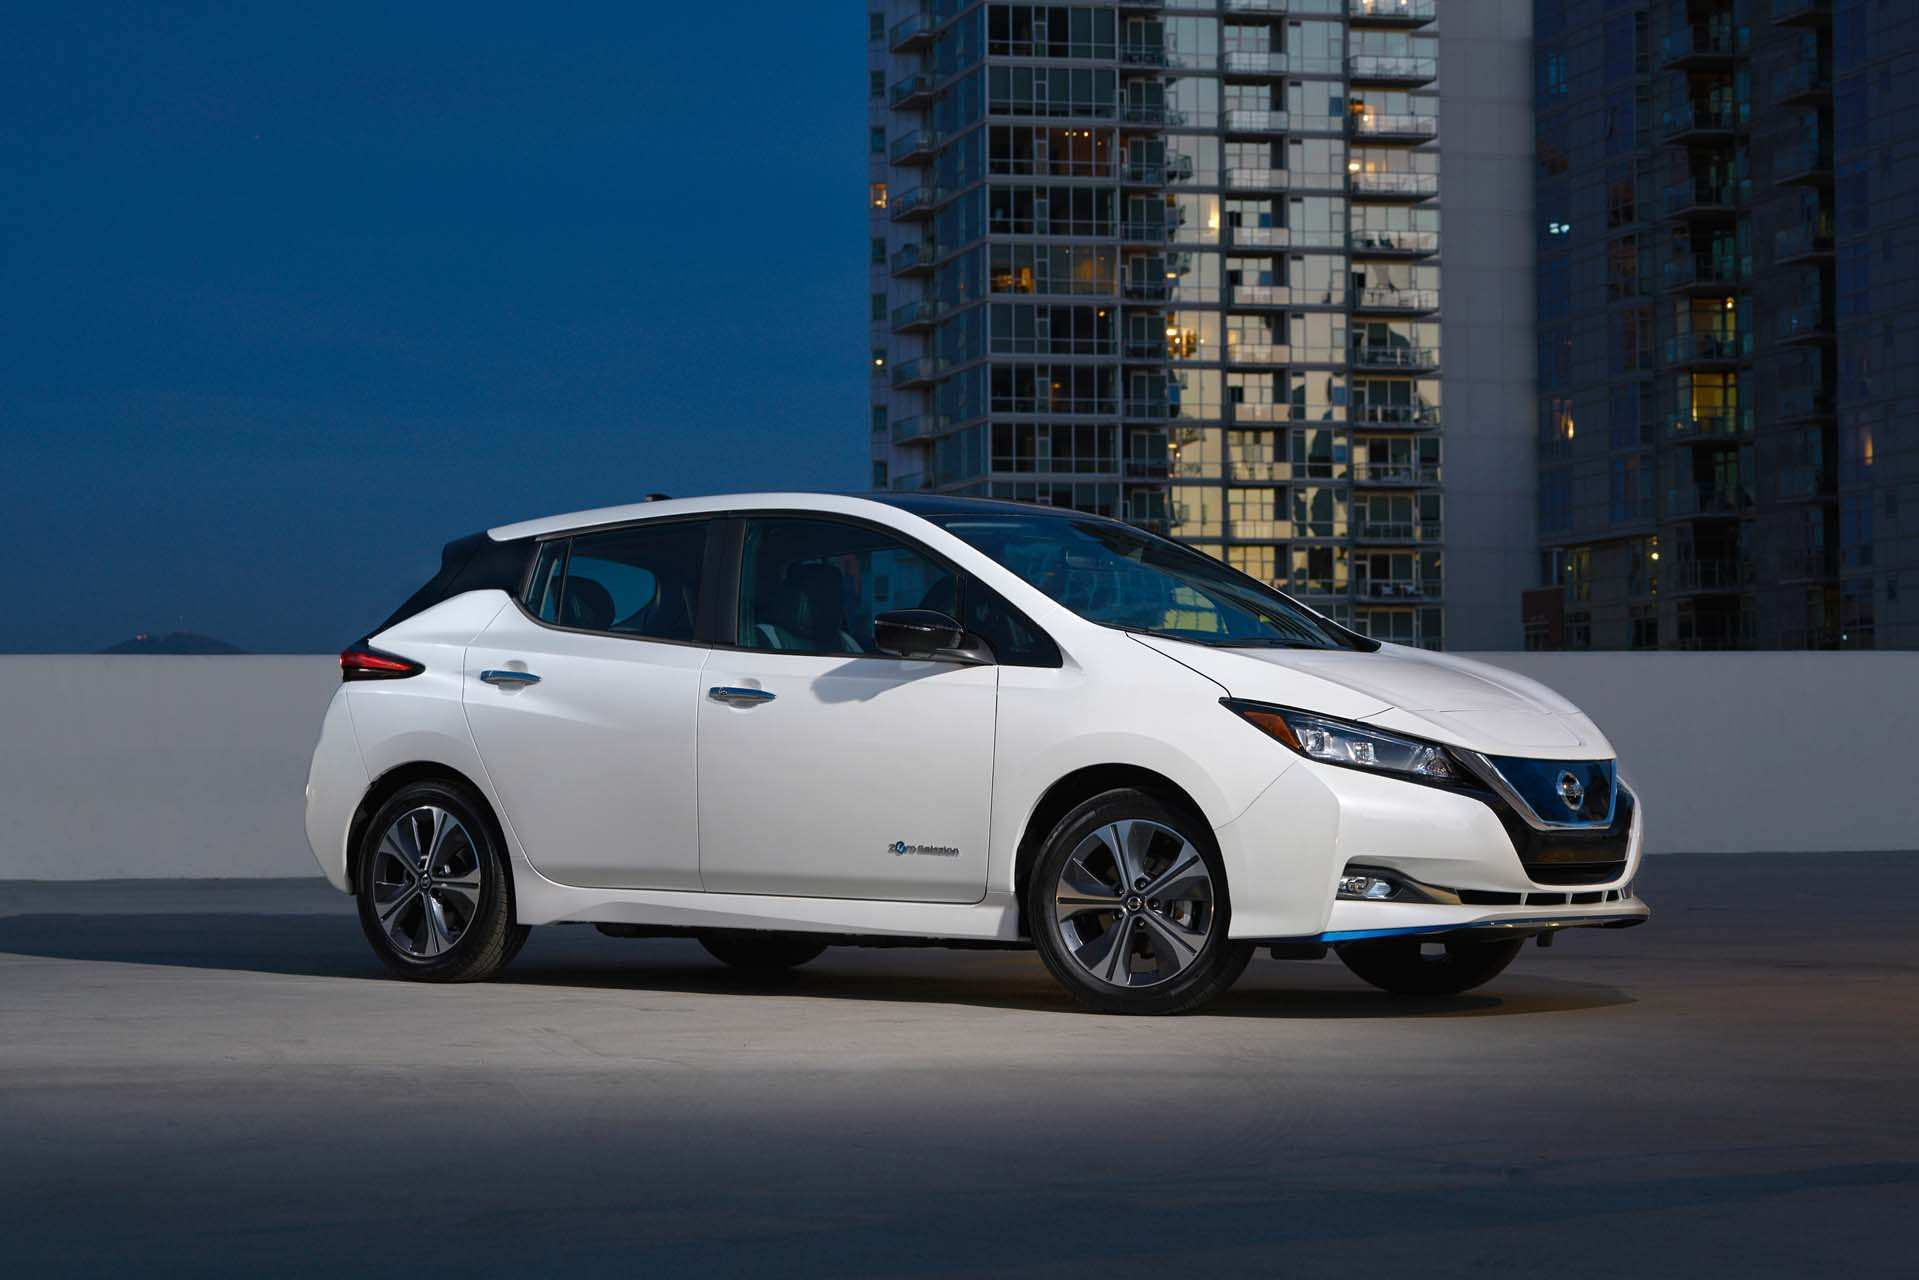 84 All New 2019 Nissan Electric Car Prices by 2019 Nissan Electric Car